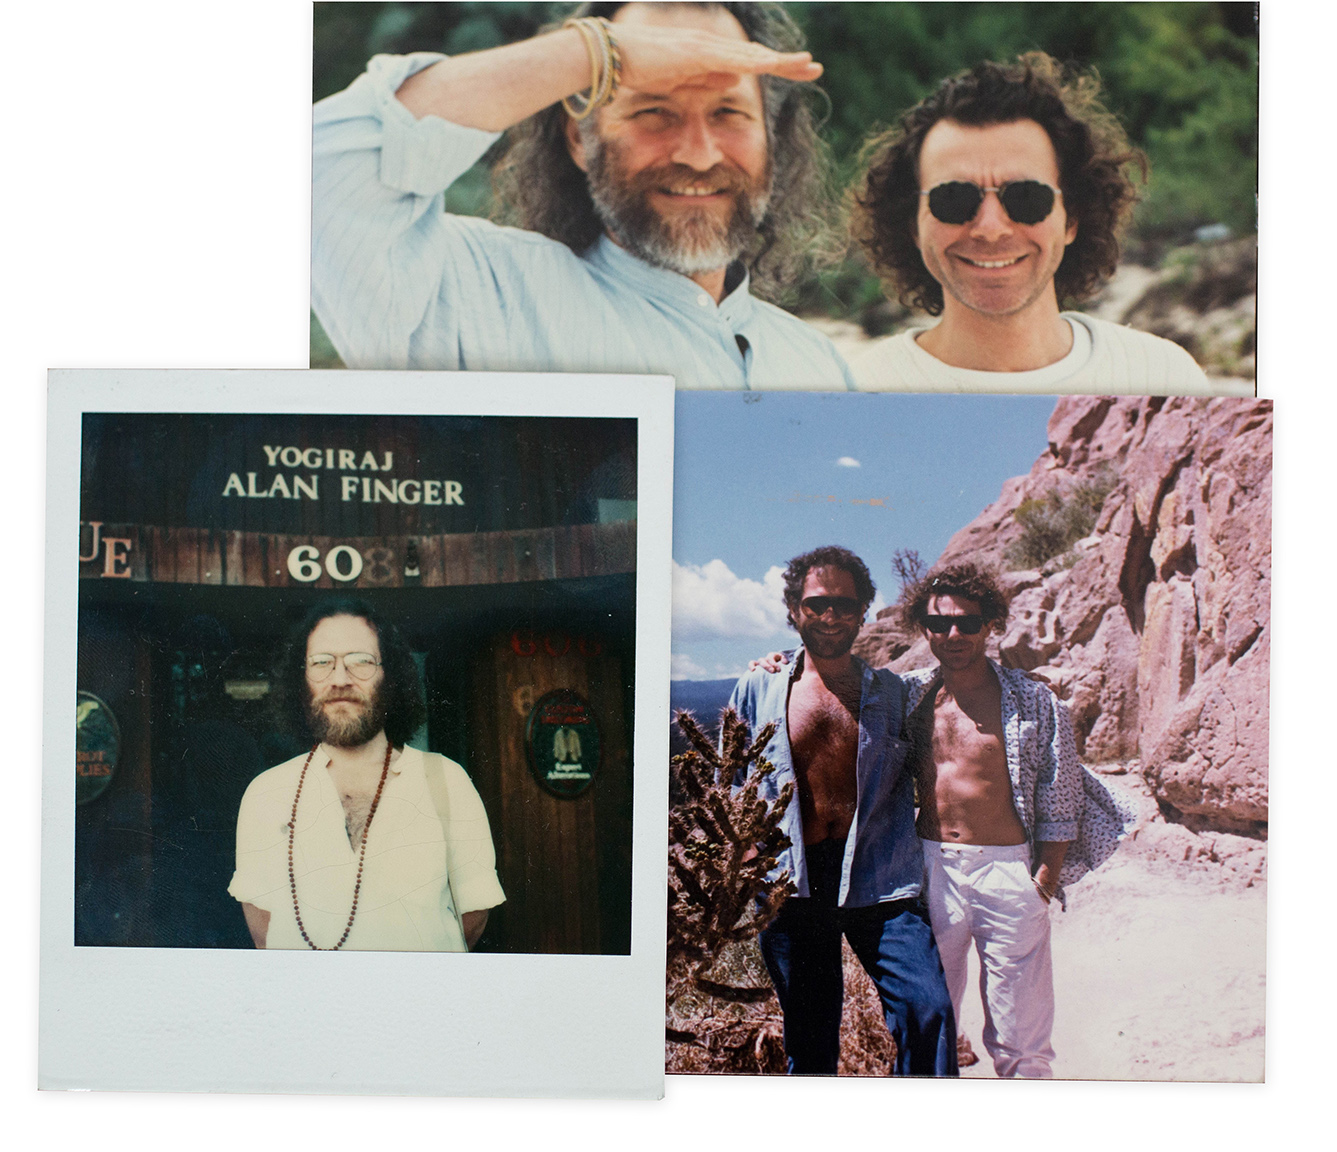 Michael with Alan Finger in New Mexico, and Alan's yoga studio in LA.